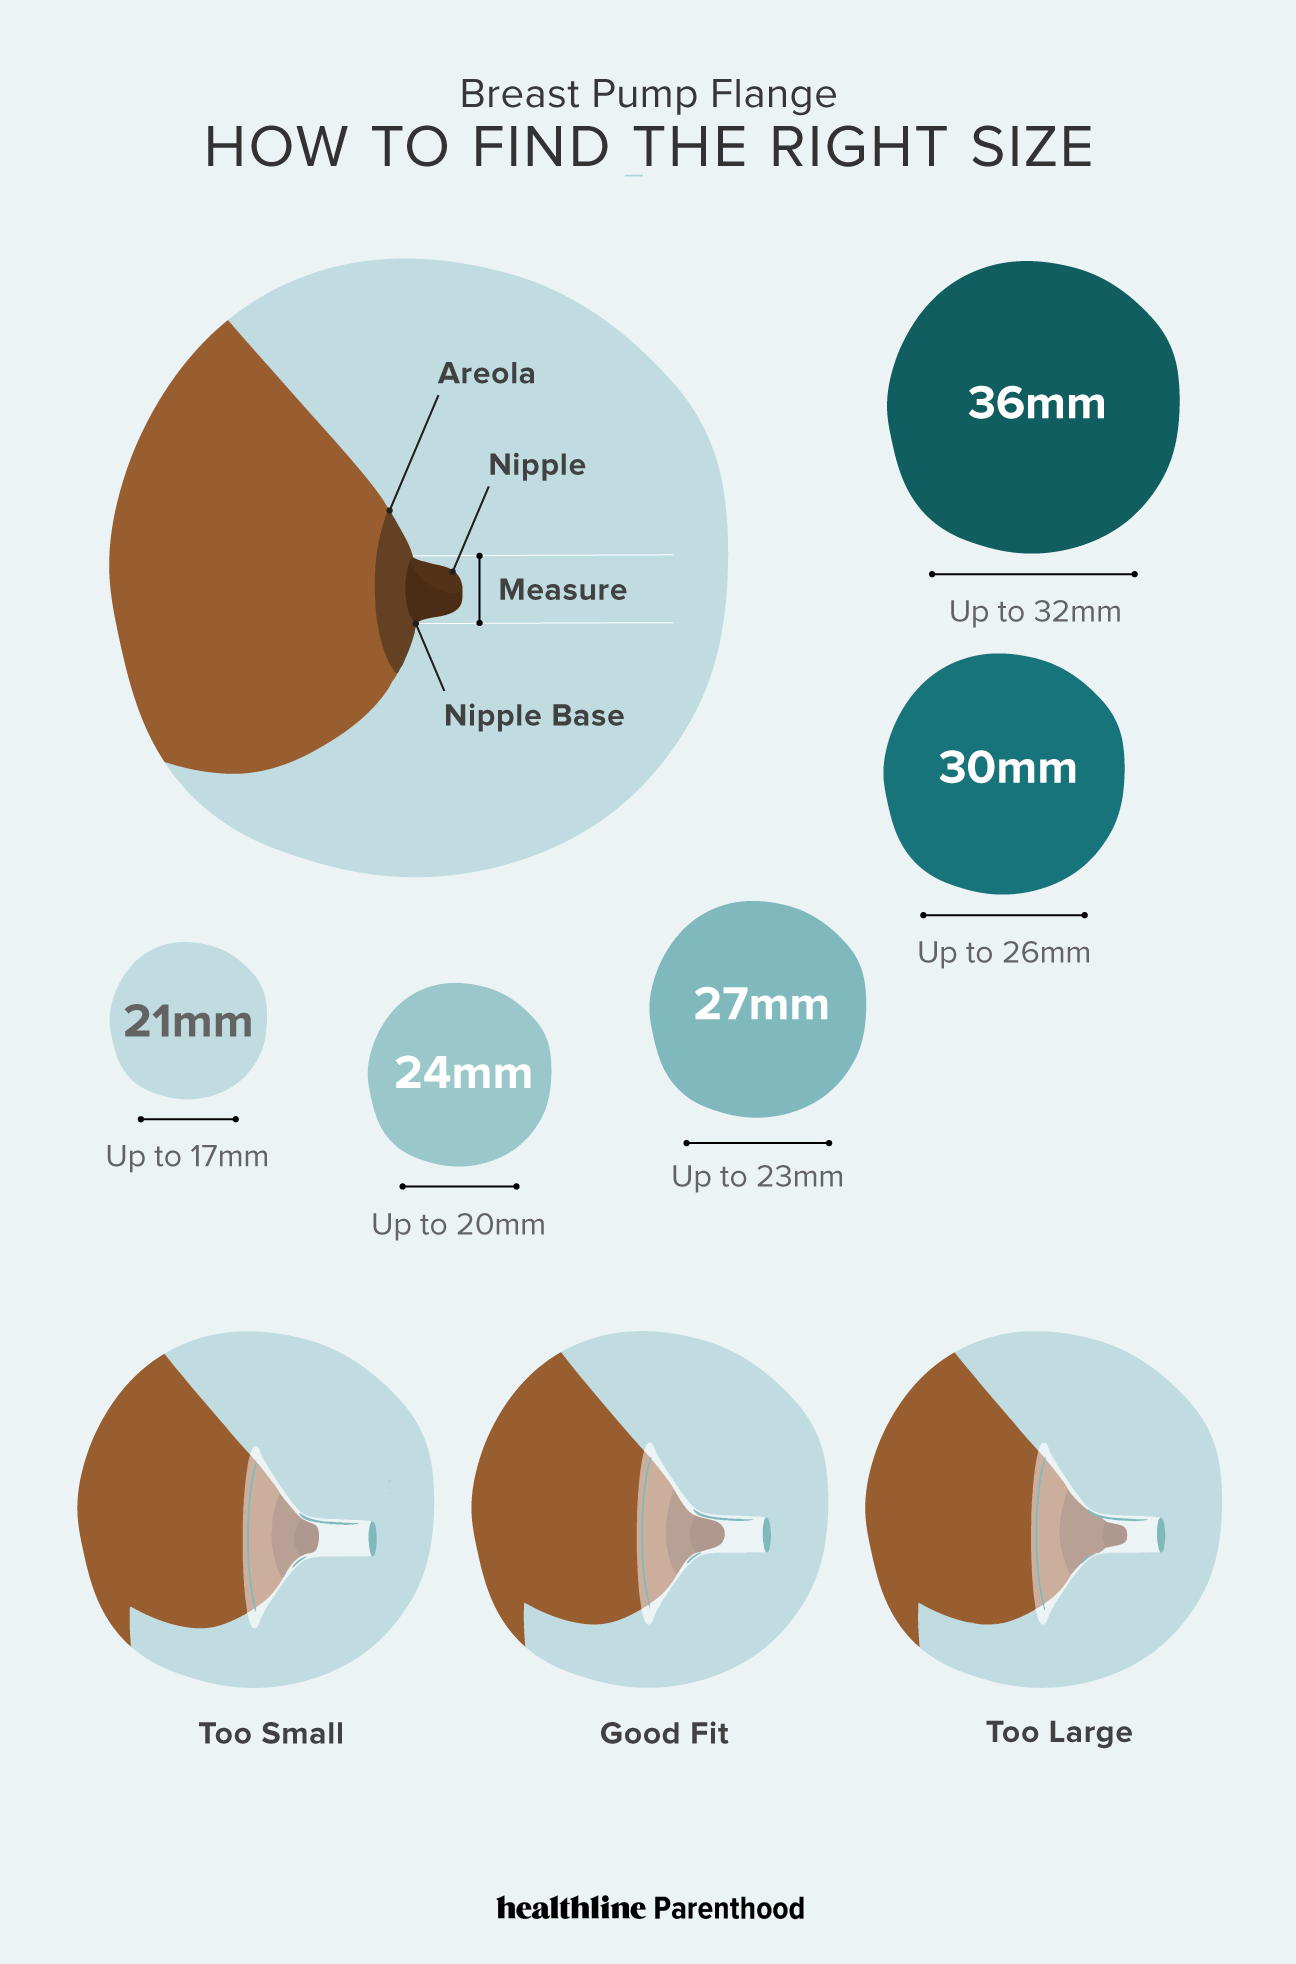 Breast Shield and flange sizing info graph